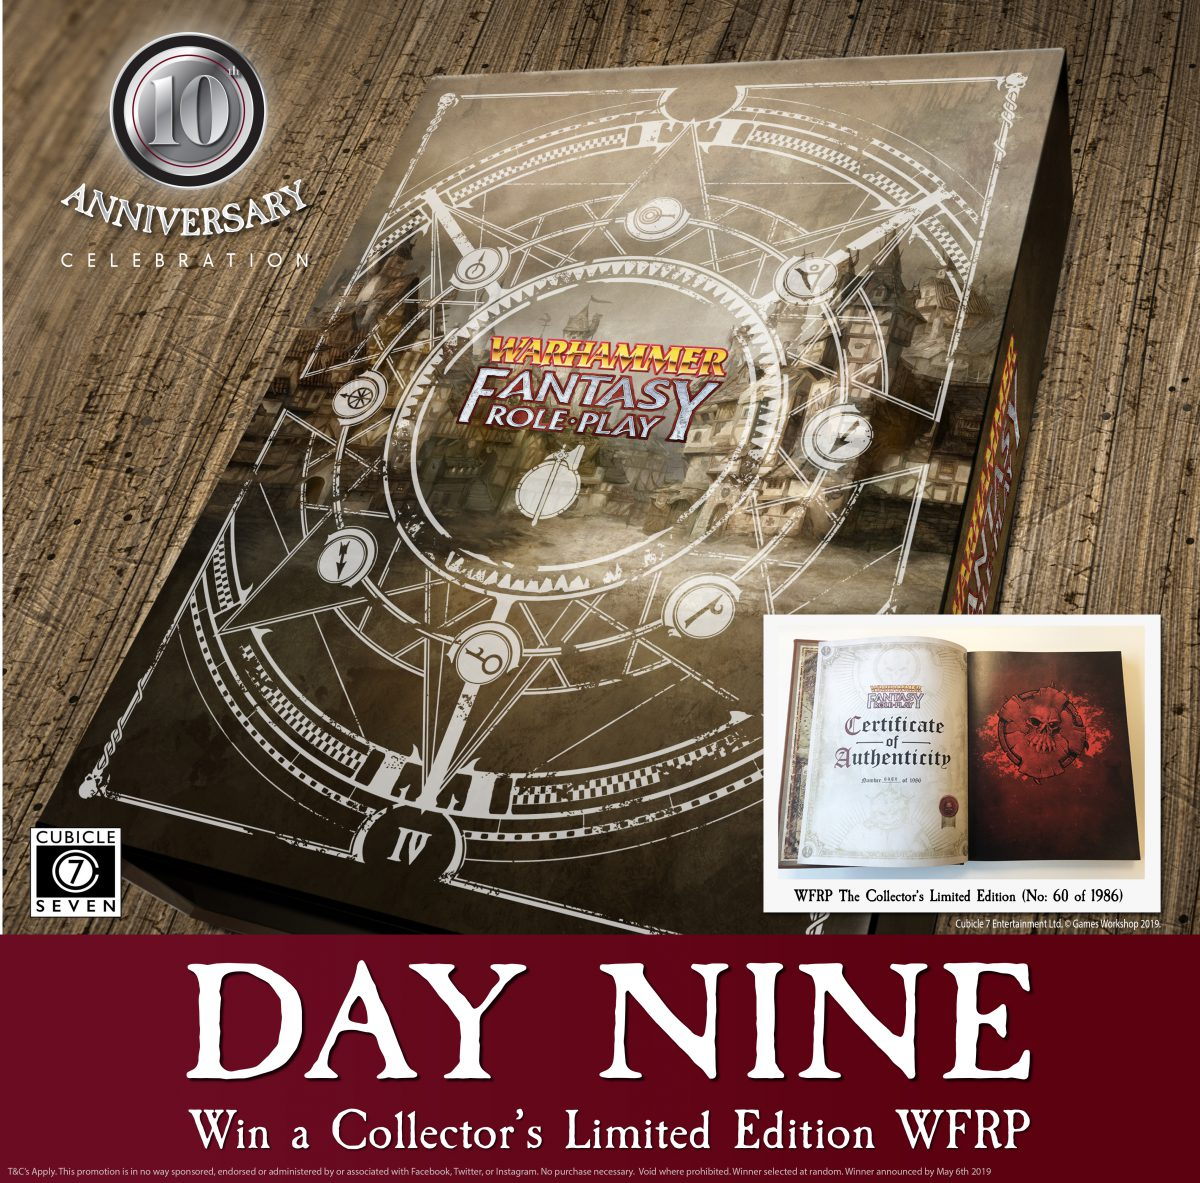 Win a Limited Edition Warhammer Fantasy Roleplay!